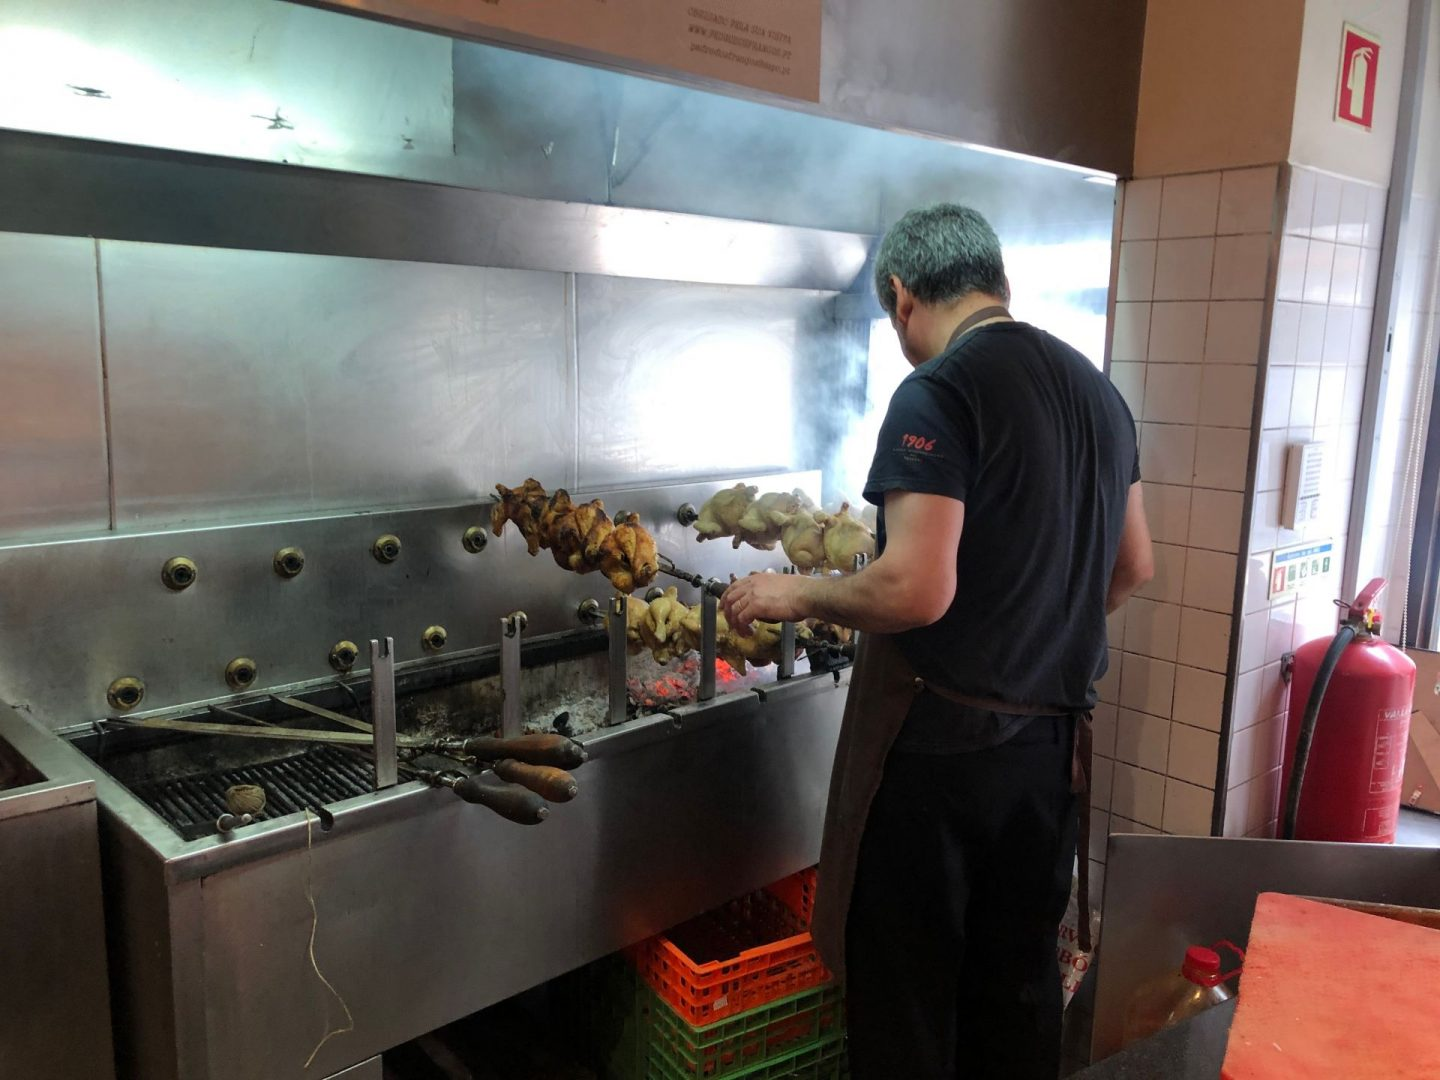 A man roasting chicken on a spit at Restaurante Pedro dos Frangos